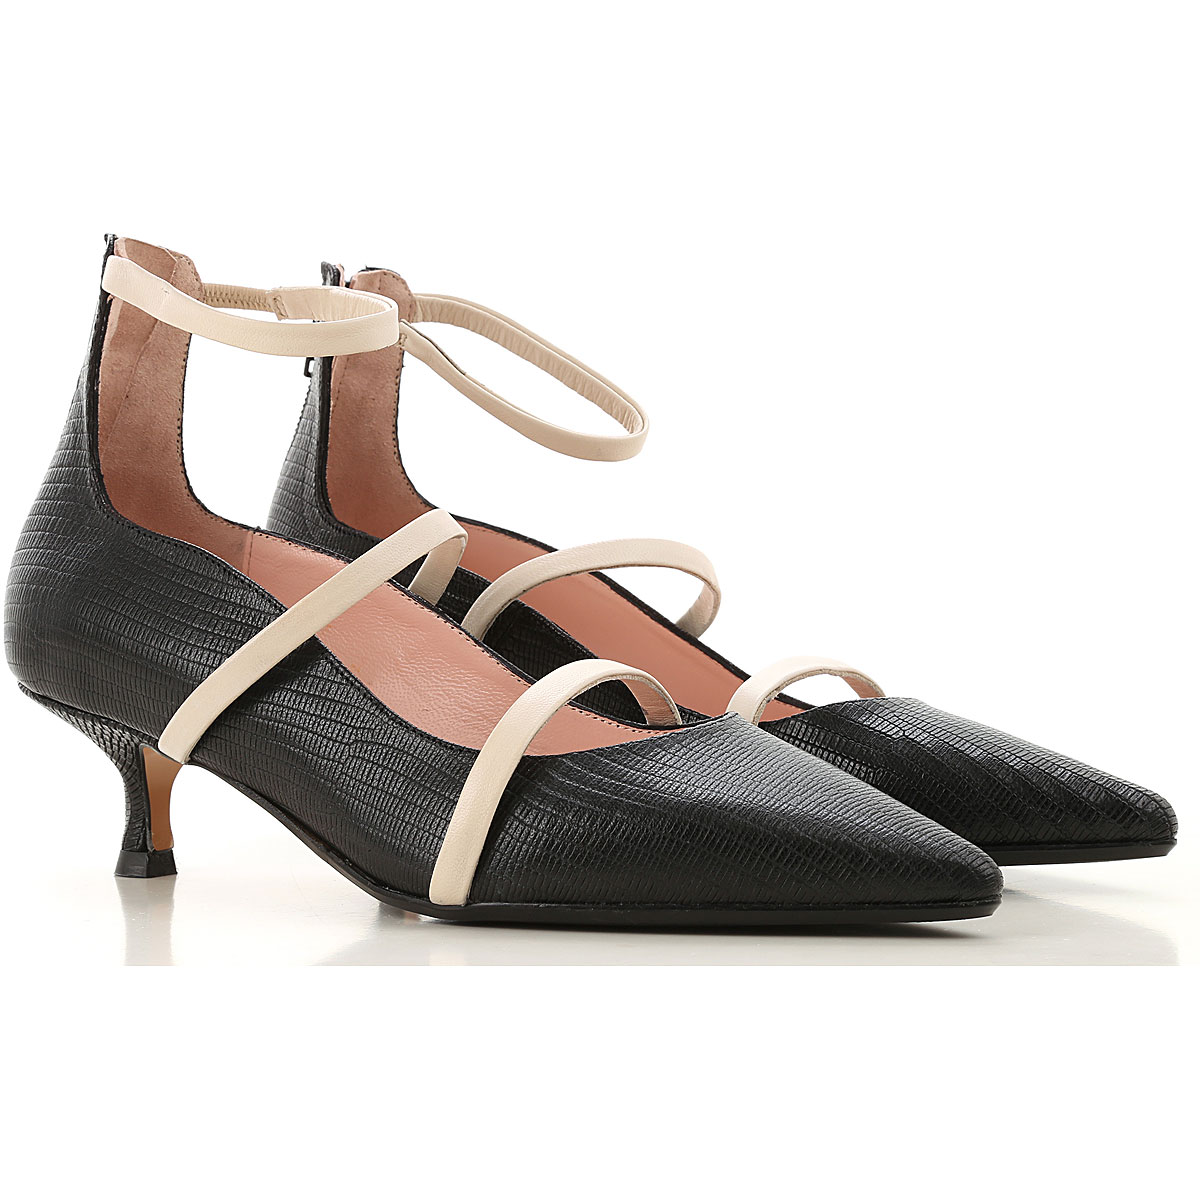 Anna F. Pumps & High Heels for Women On Sale, Black, Leather, 2019, 10 6